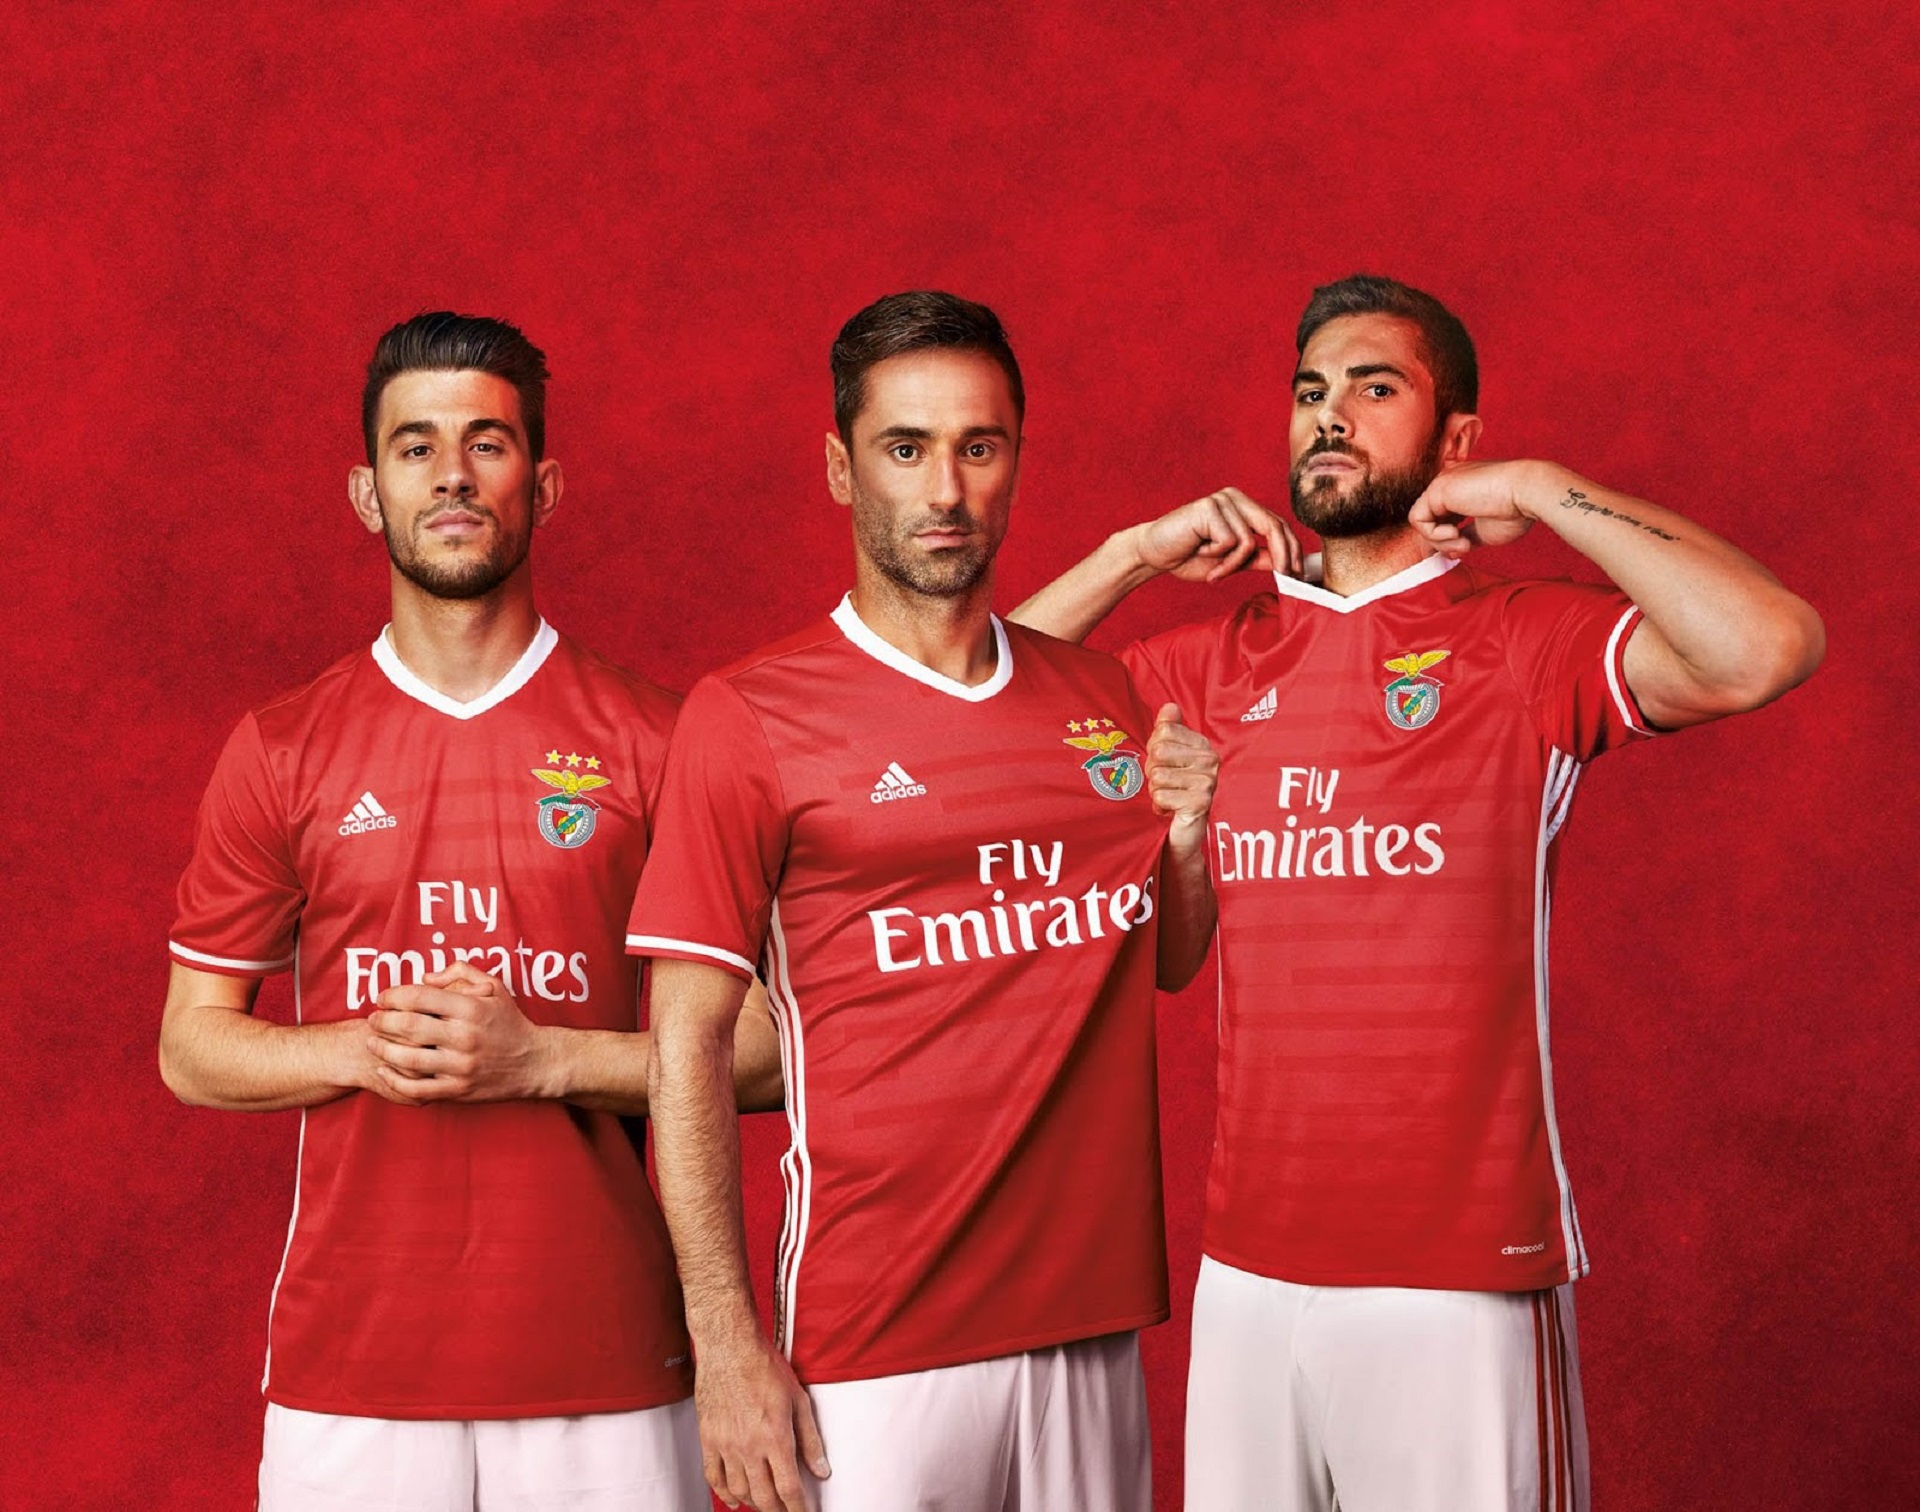 Benfica Pictures